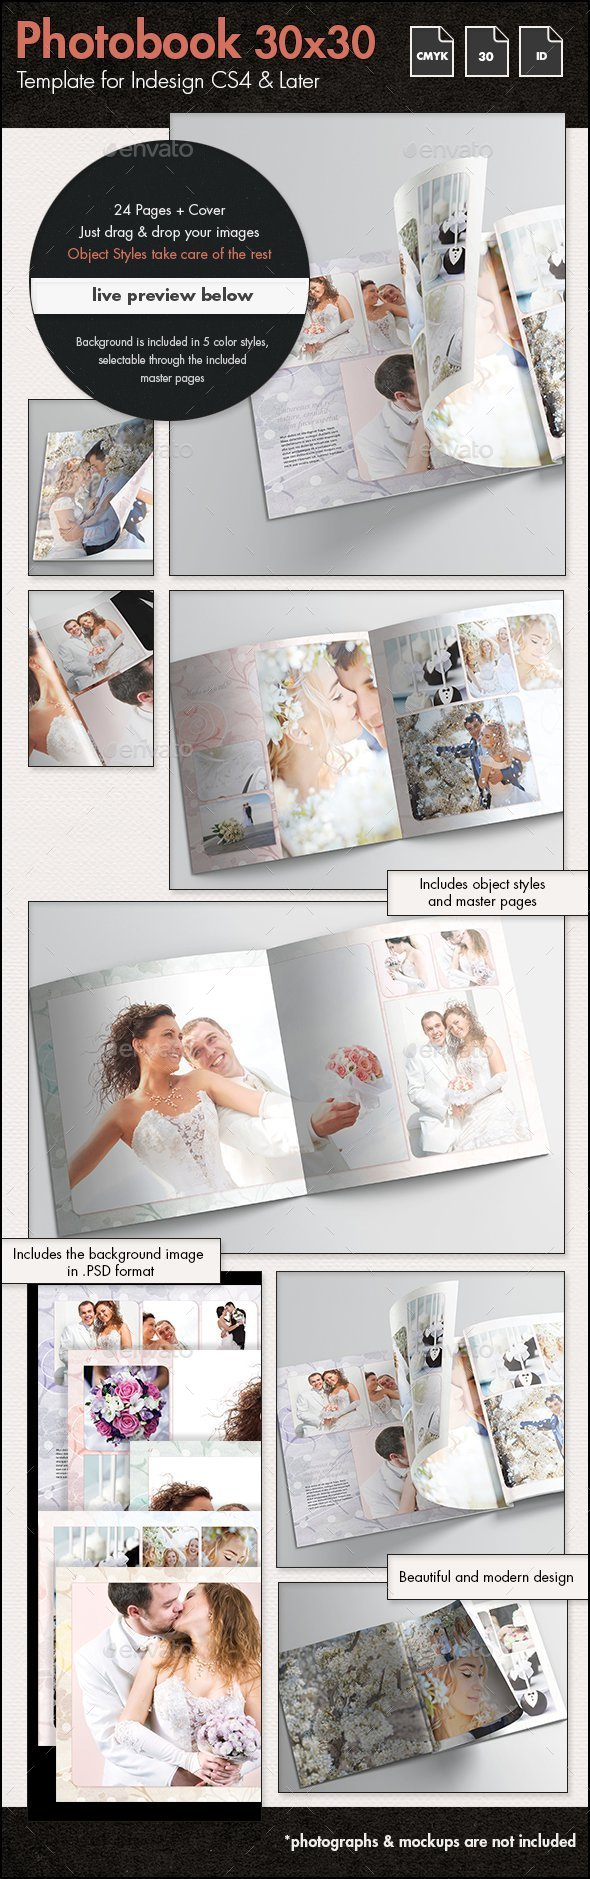 Graphics, Designs & Templates with Print Dimensions: 30x30